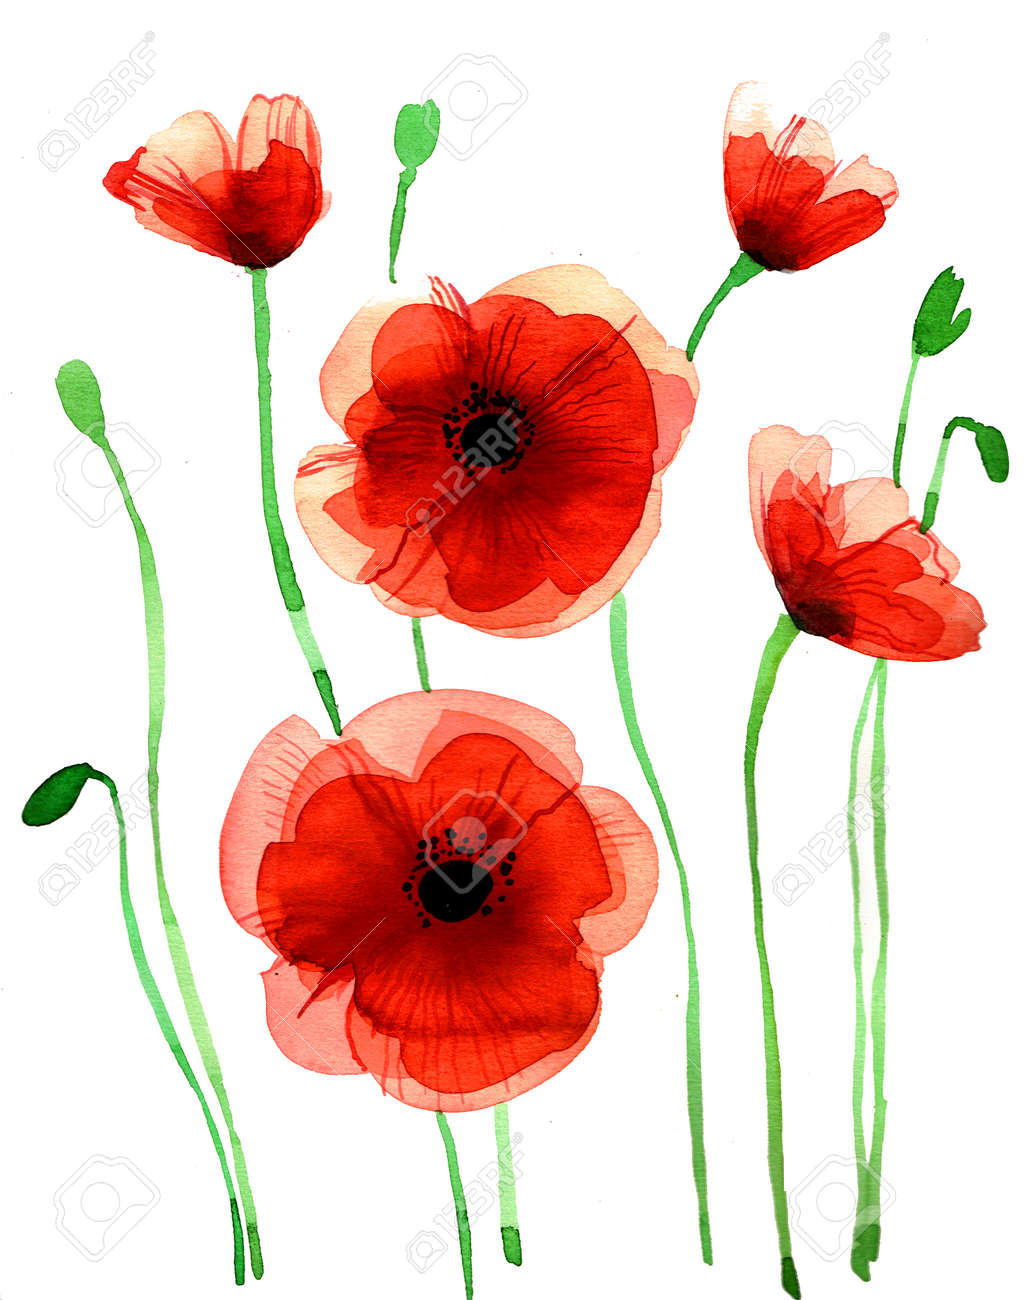 Red poppies flowers watercolor hand drawn illustration on white illustration red poppies flowers watercolor hand drawn illustration on white background mightylinksfo